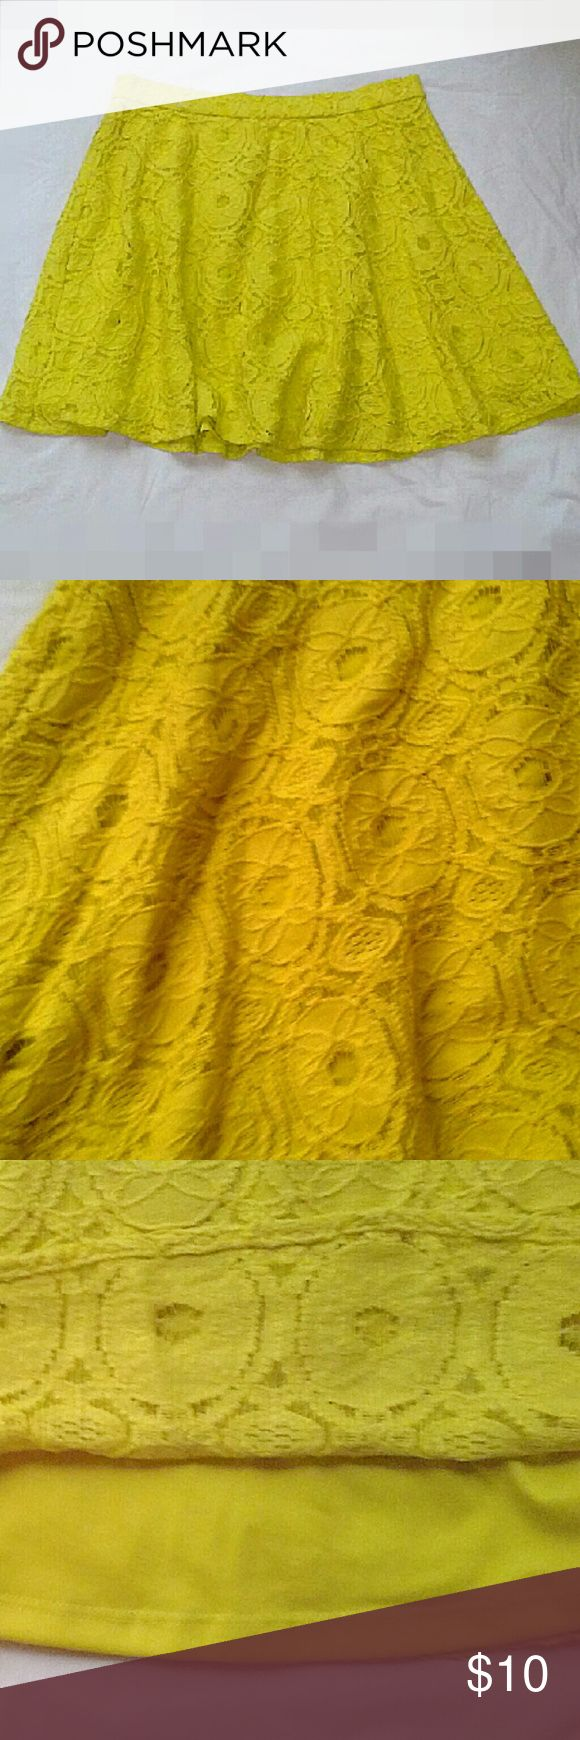 Forever 21 Yellow Lace Swing Skirt Yellow lace over solid yellow lining. The Length is 16 inches. The shell is 87% cotton and 13% nylon. The lining is 100% poly. The zipper is on the back of the skirt. Excellent like new condition. Forever 21 Skirts Circle & Skater